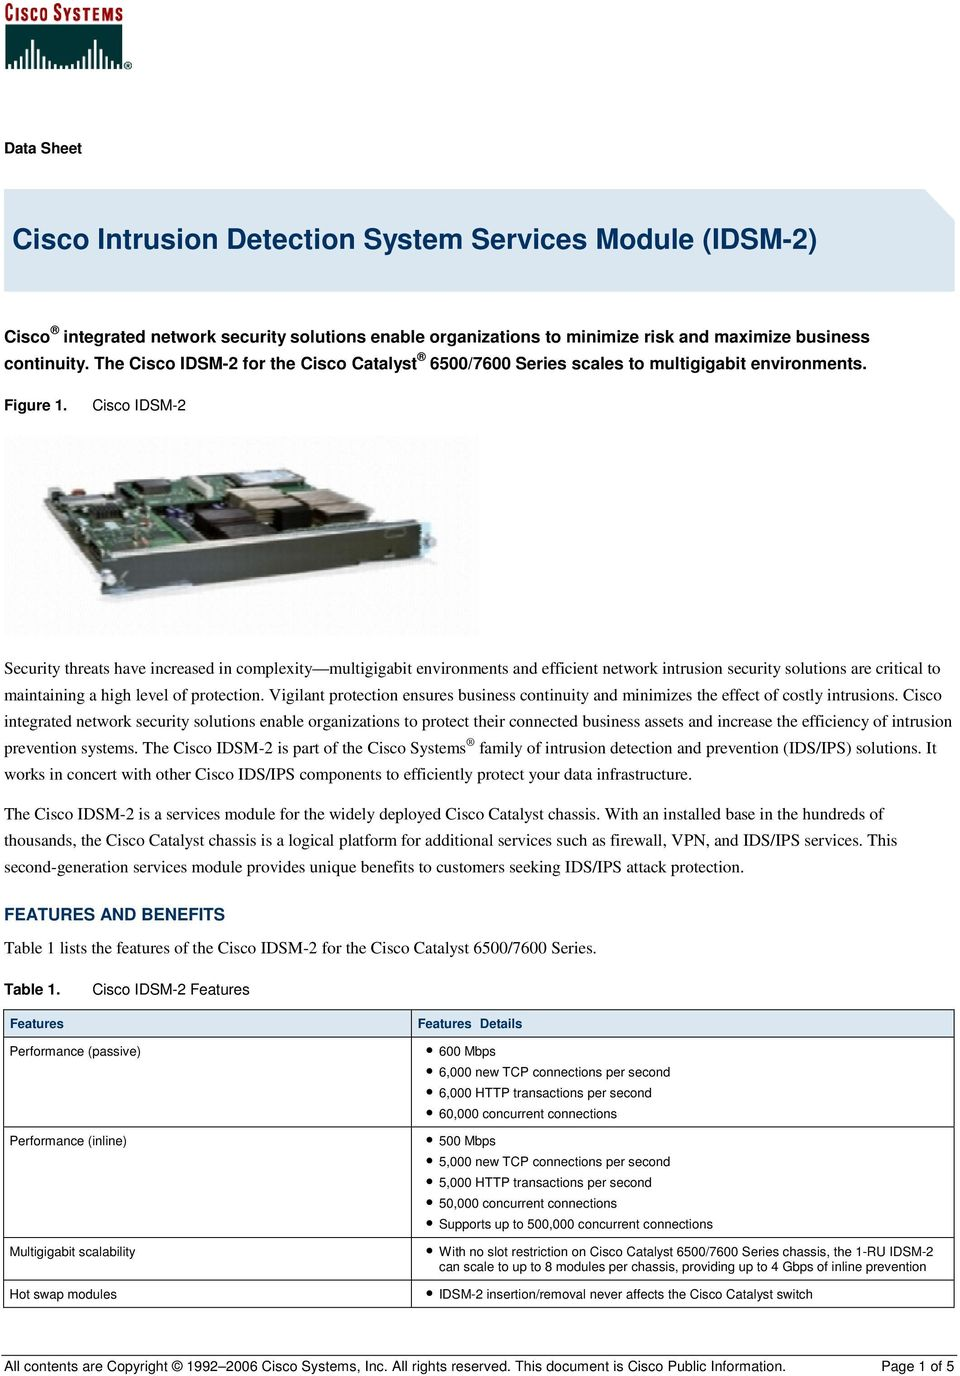 Cisco IDSM-2 Security threats have increased in complexity multigigabit environments and efficient network intrusion security solutions are critical to maintaining a high level of protection.